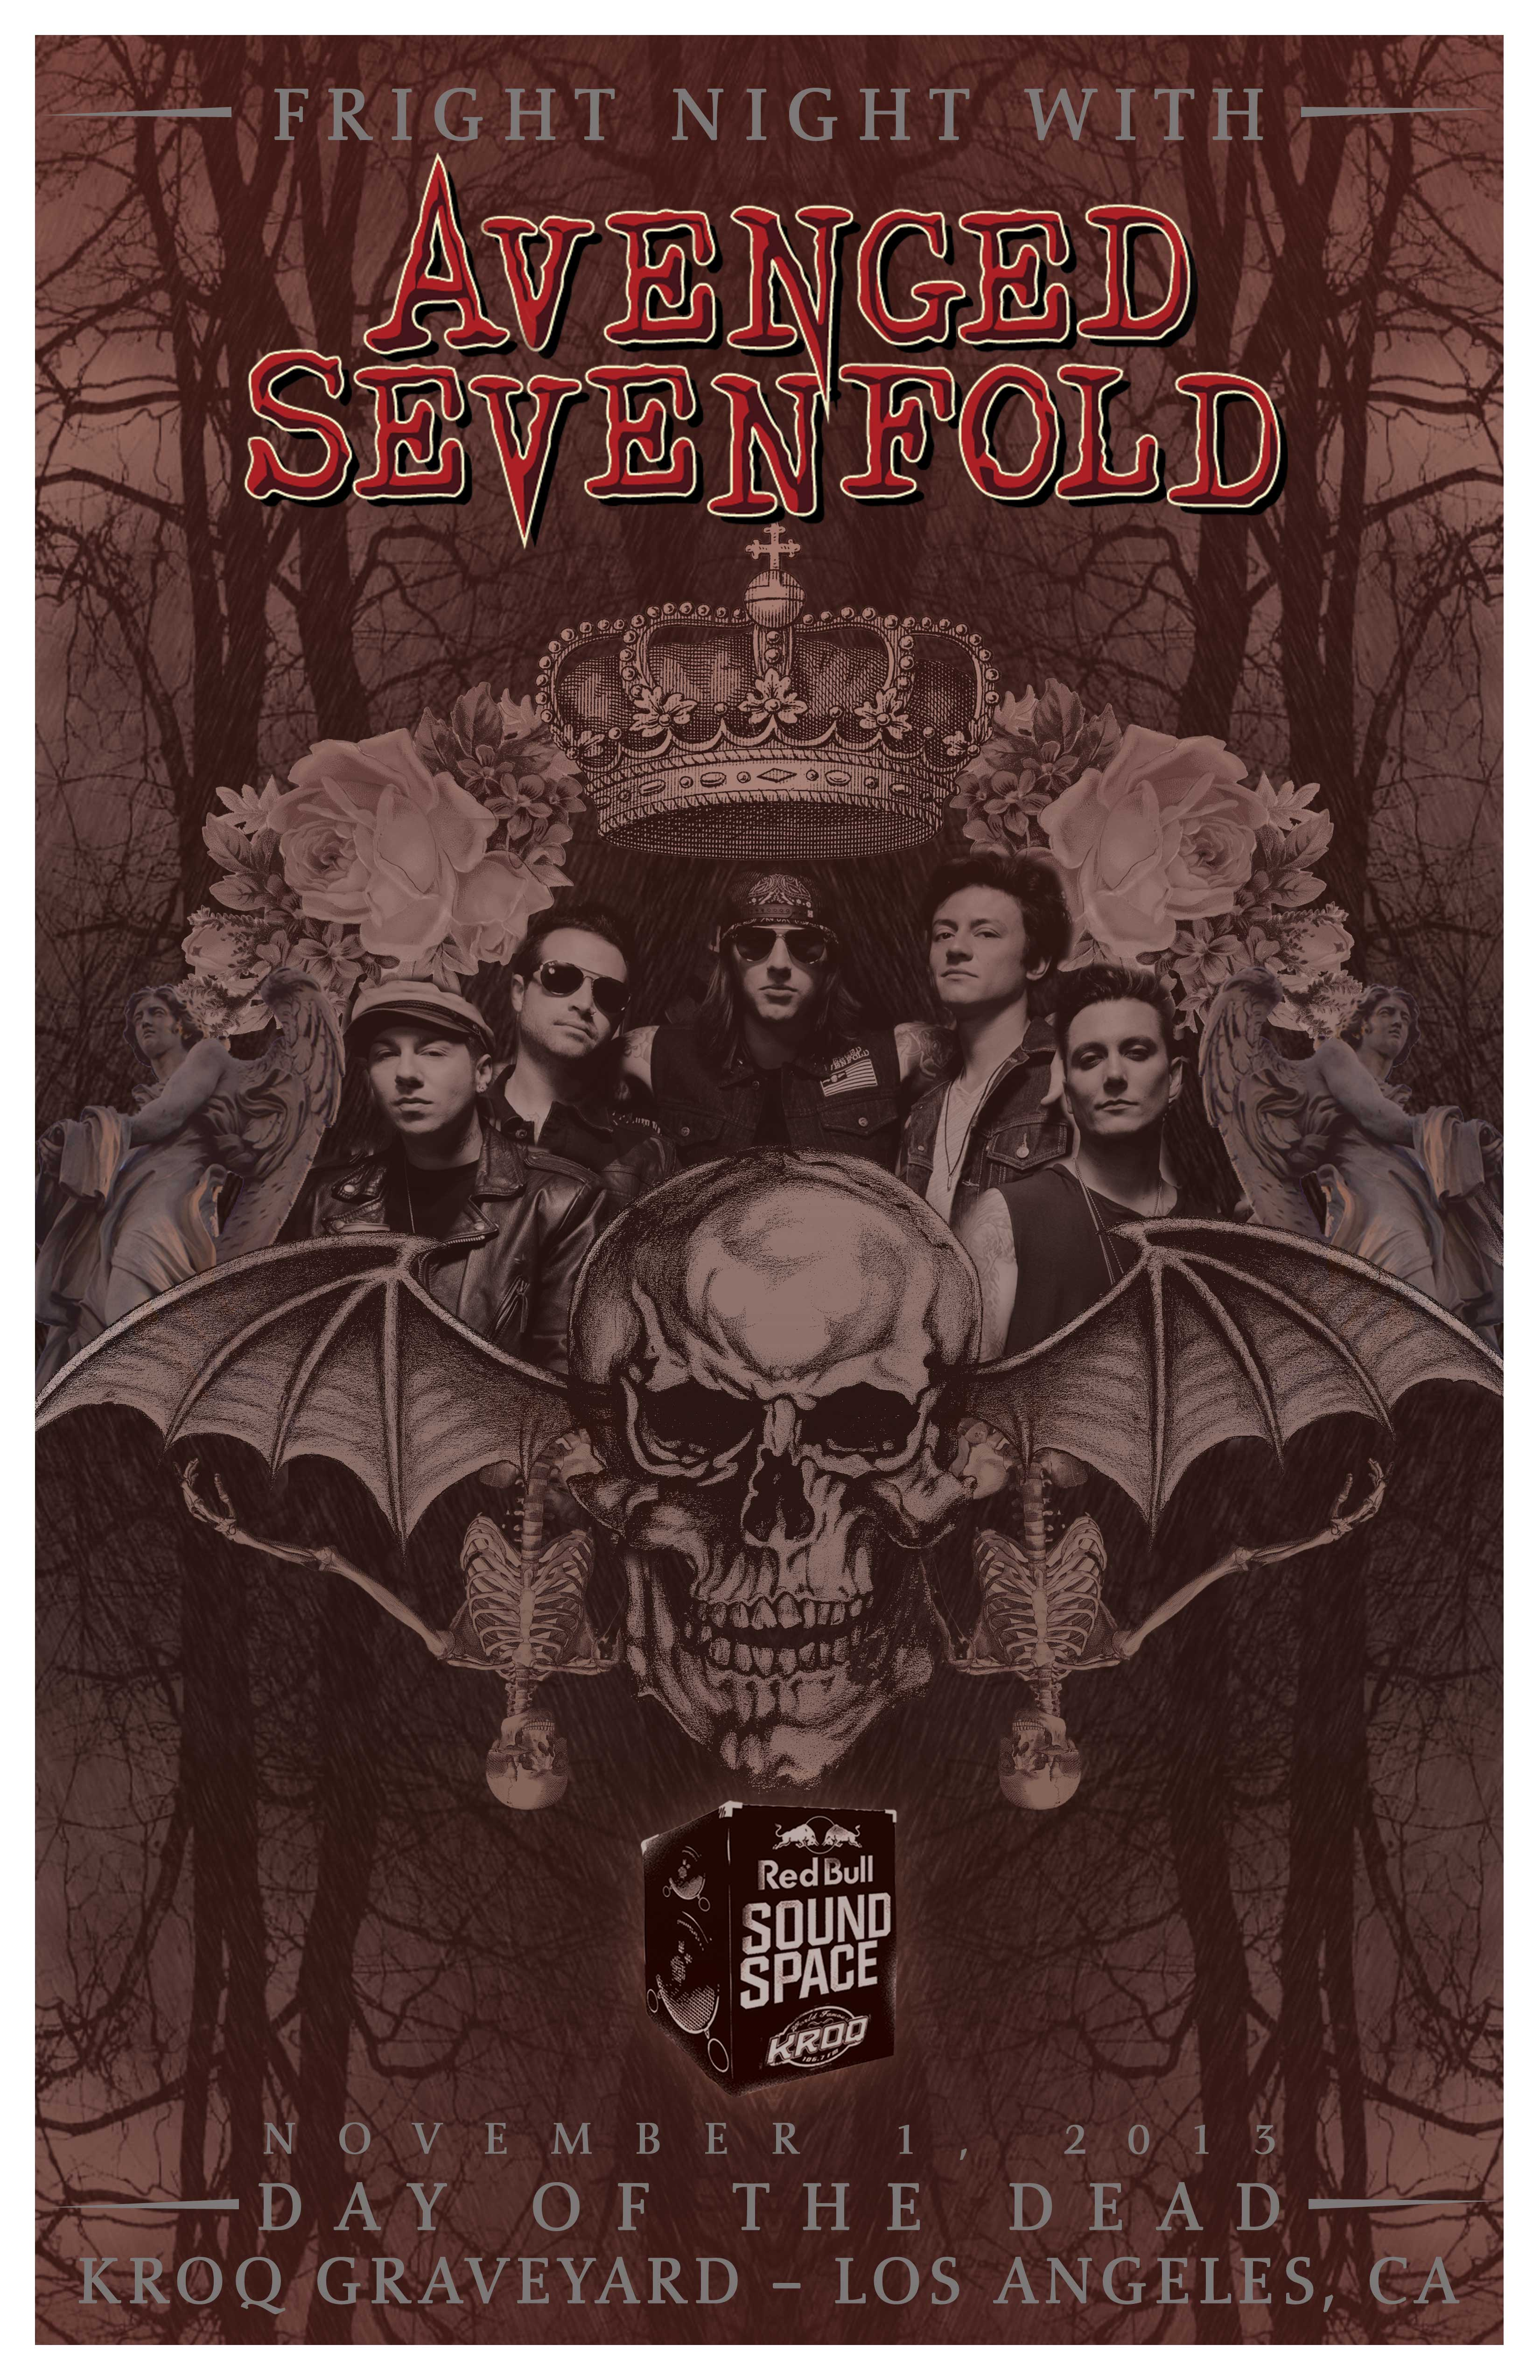 131101-AVENGED_sevenfold-RBSS-poster-Final.jpg